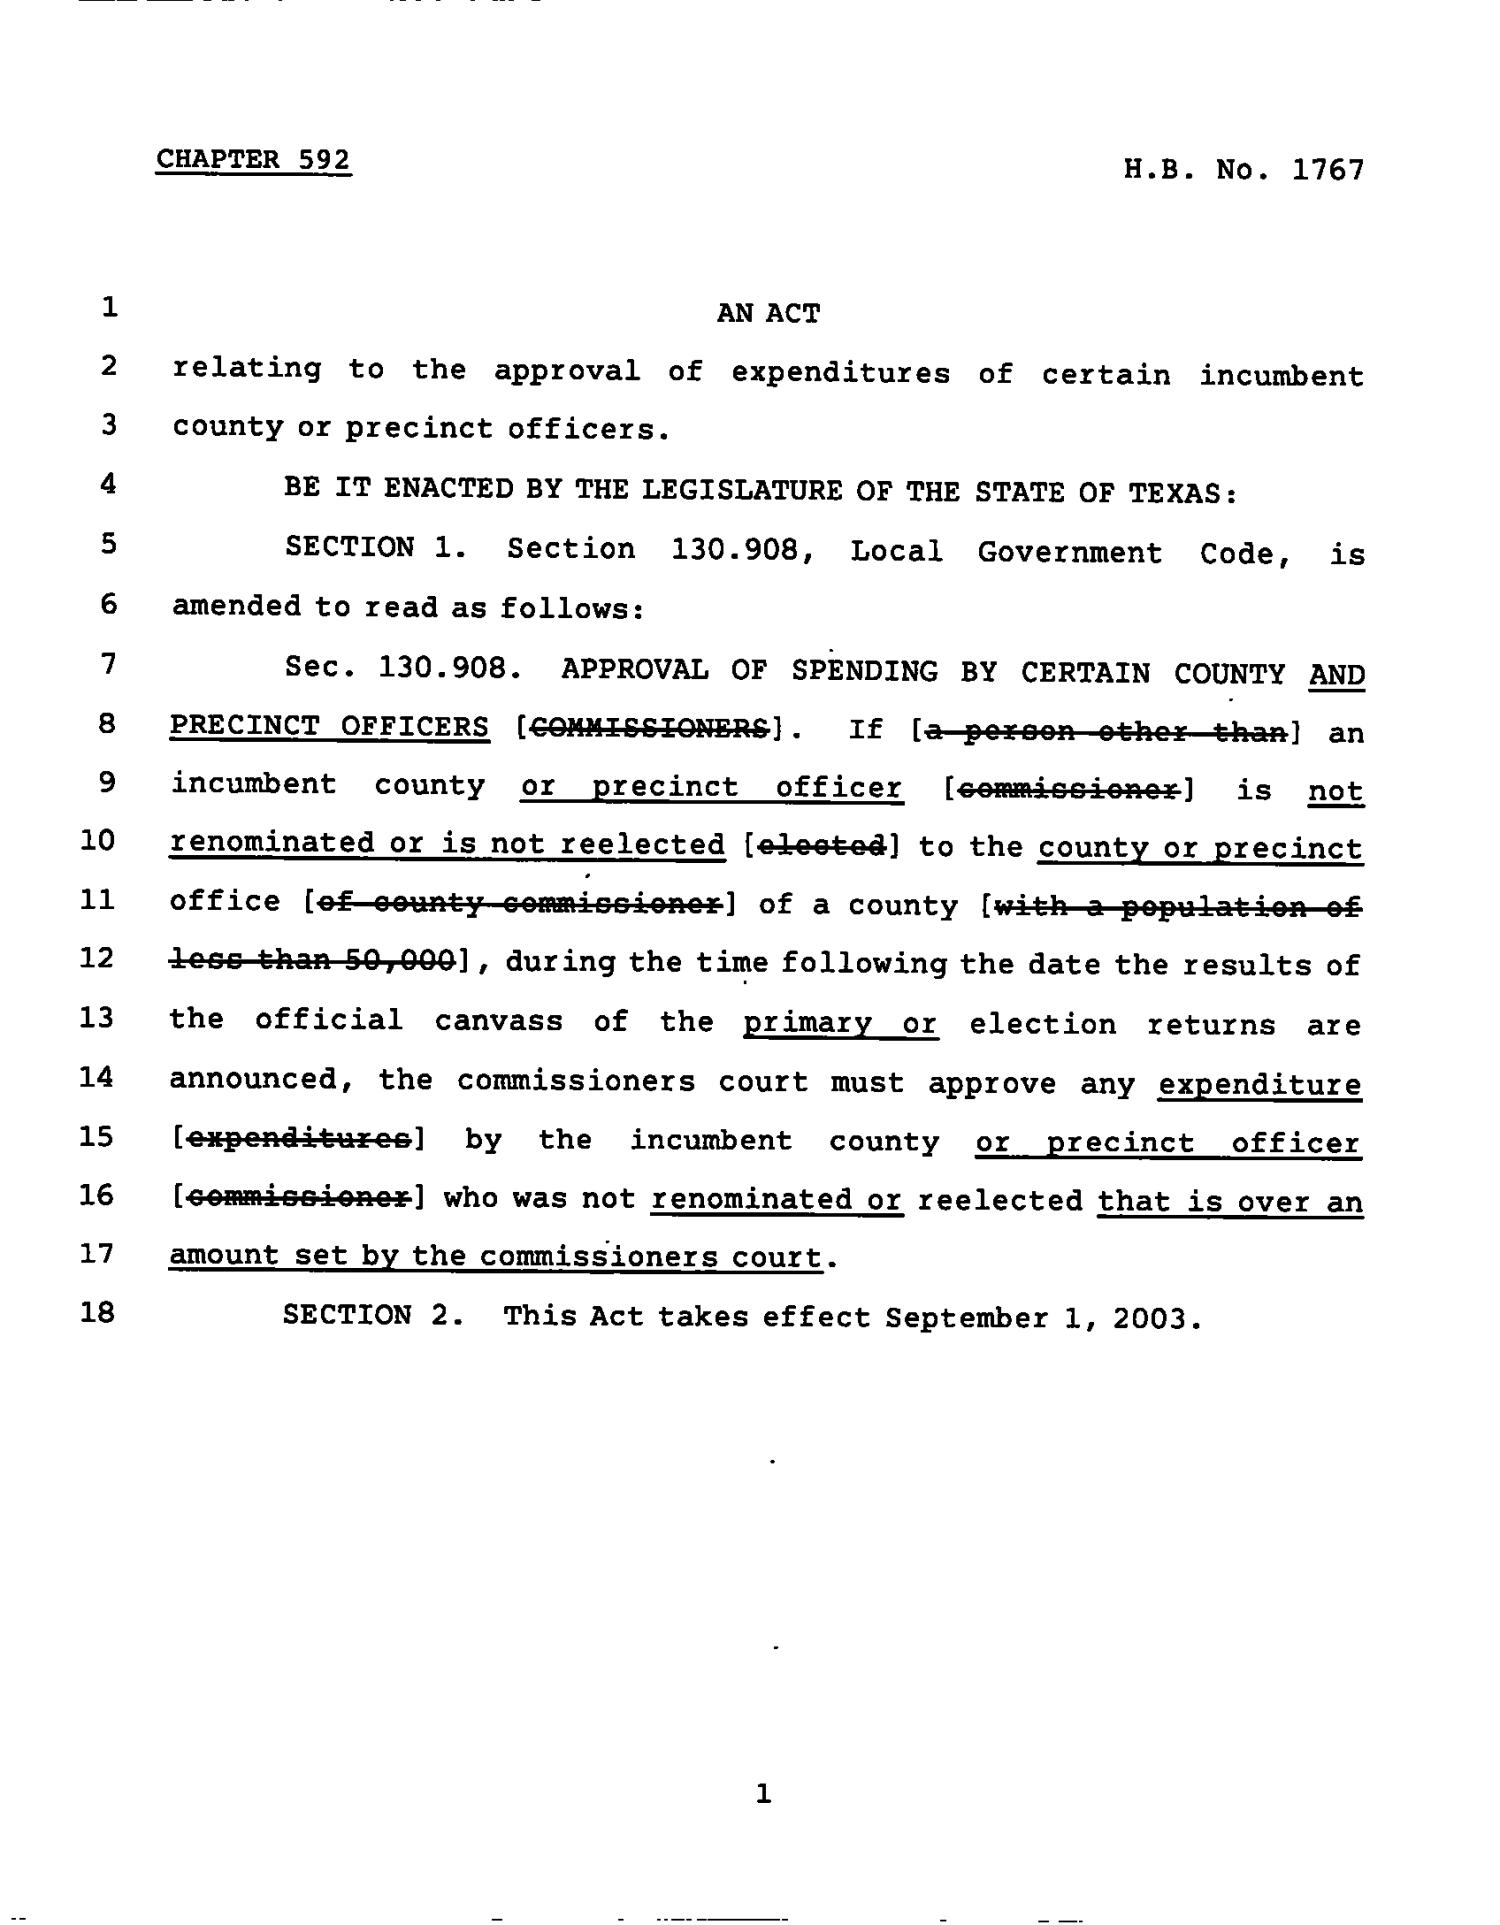 78th Texas Legislature, Regular Session, House Bill 1767, Chapter 592                                                                                                      [Sequence #]: 1 of 2